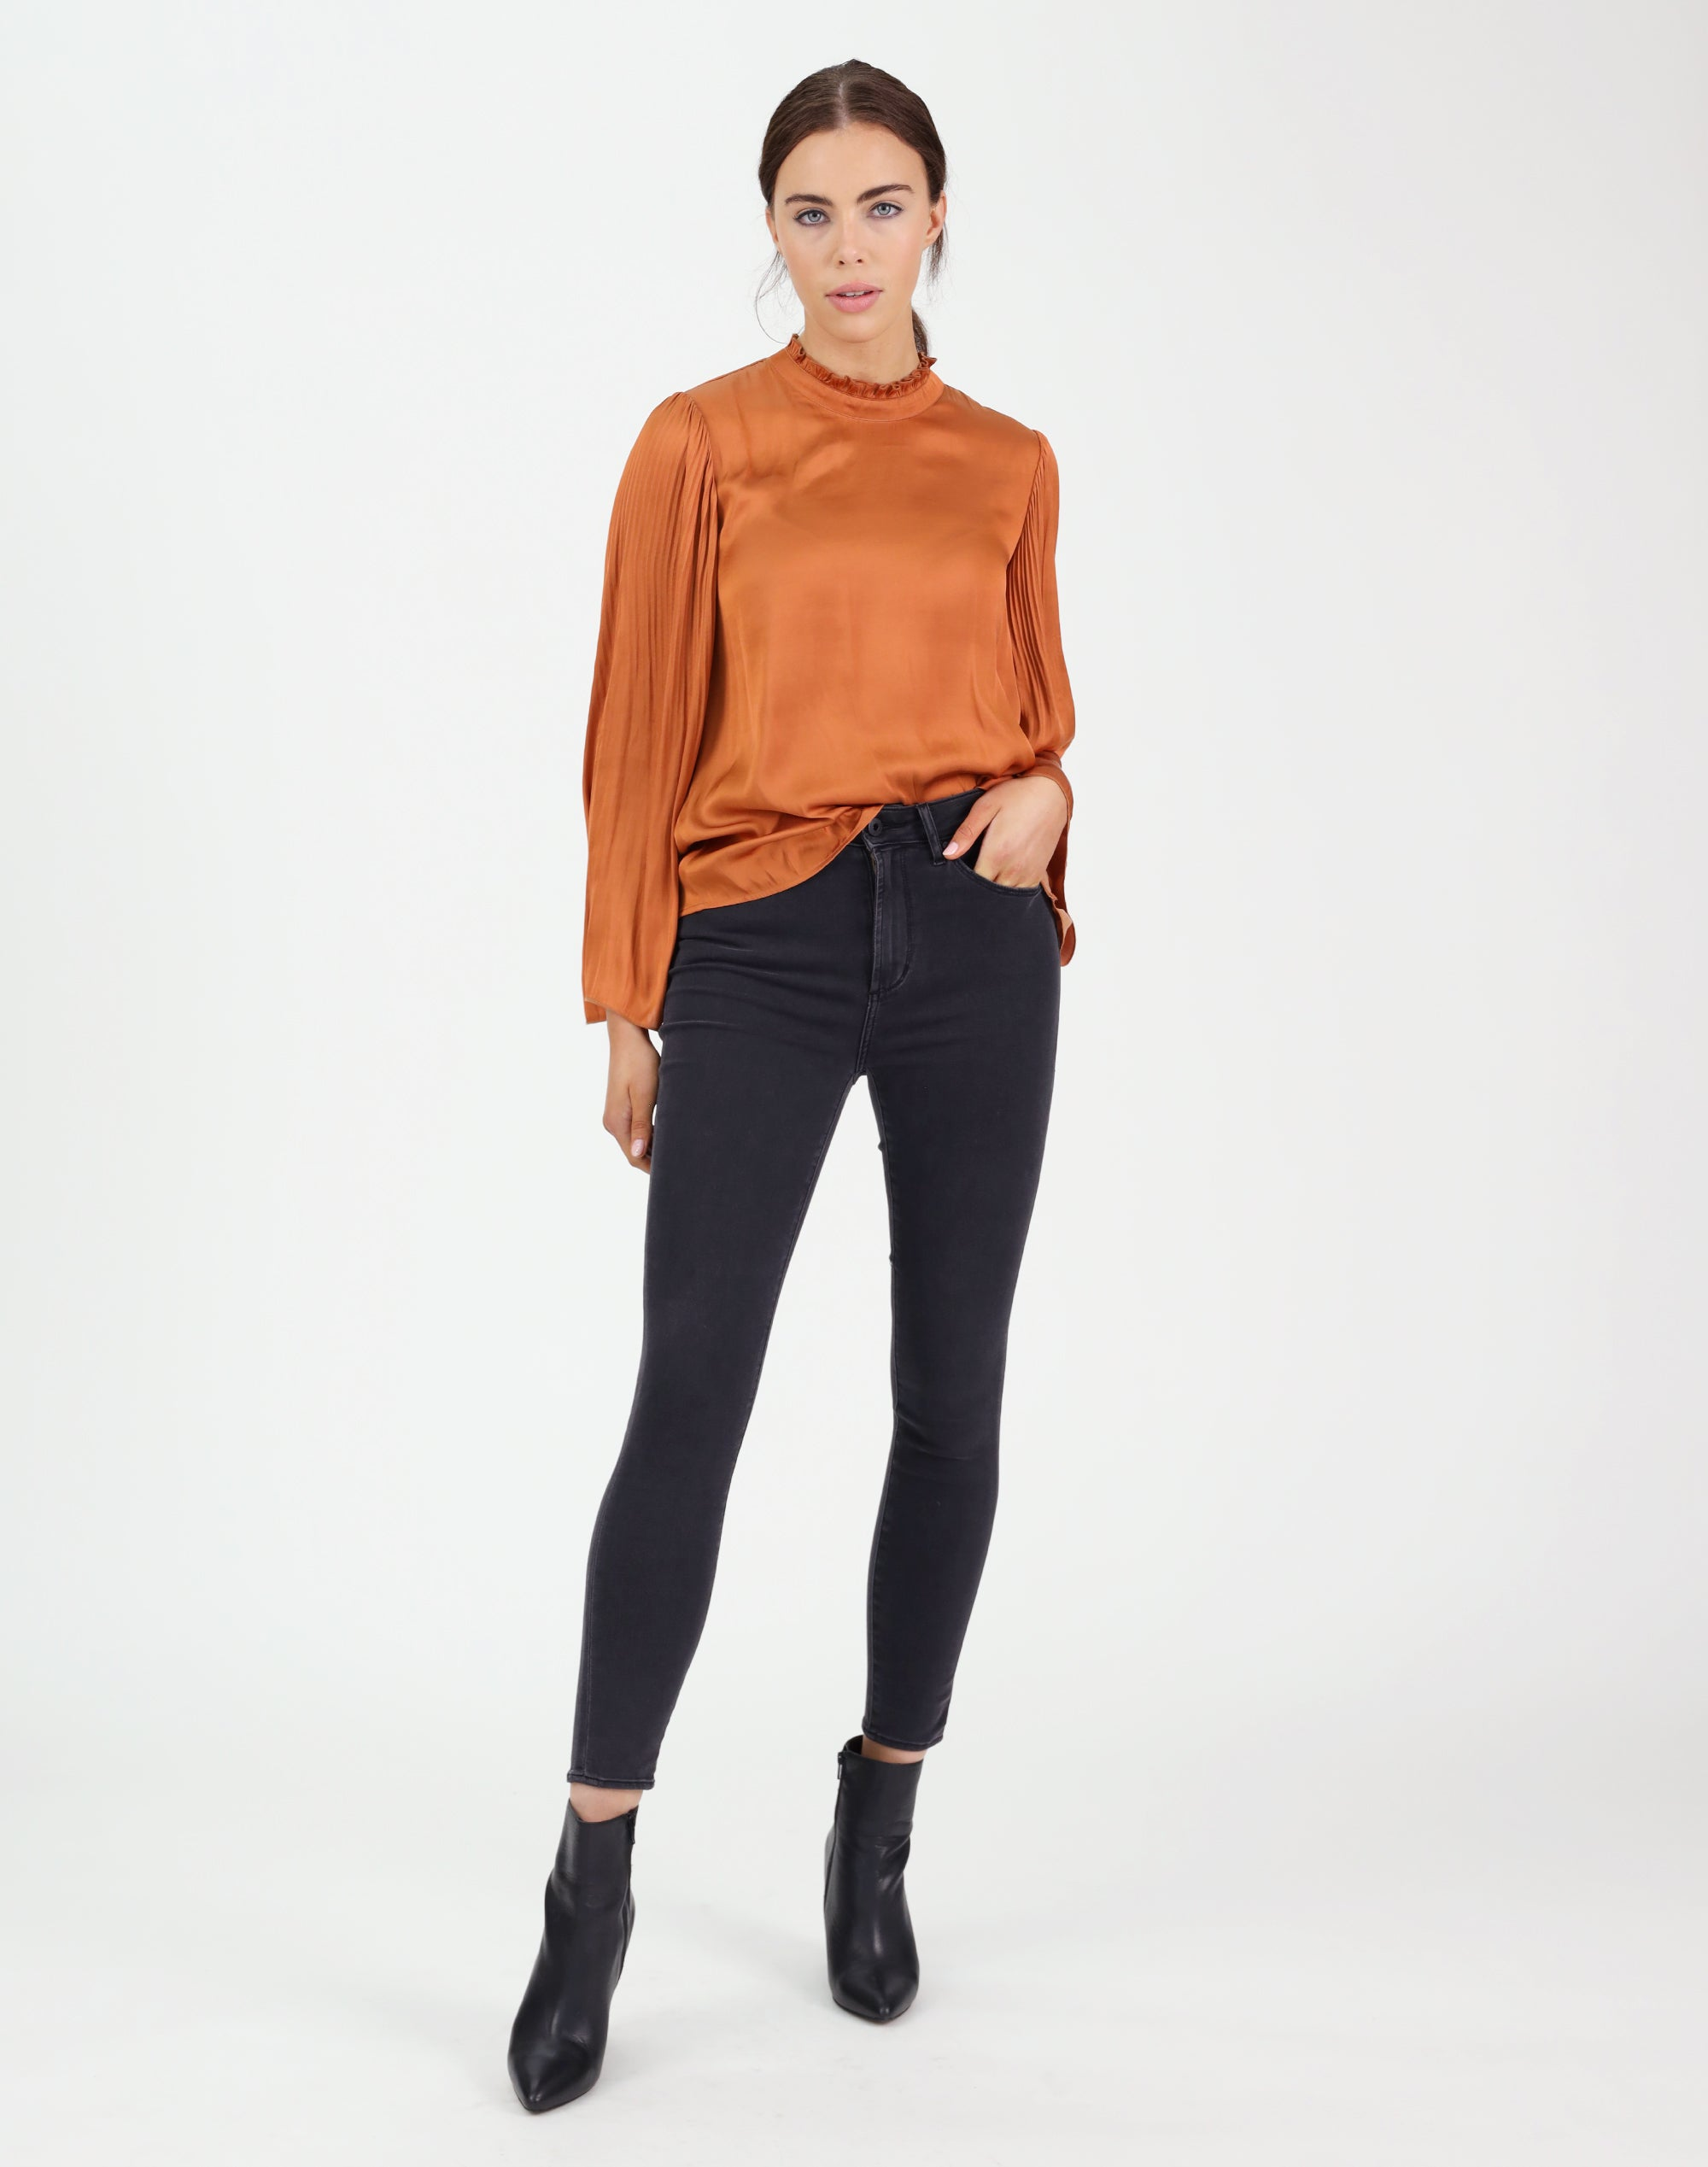 Pleated Vision Top